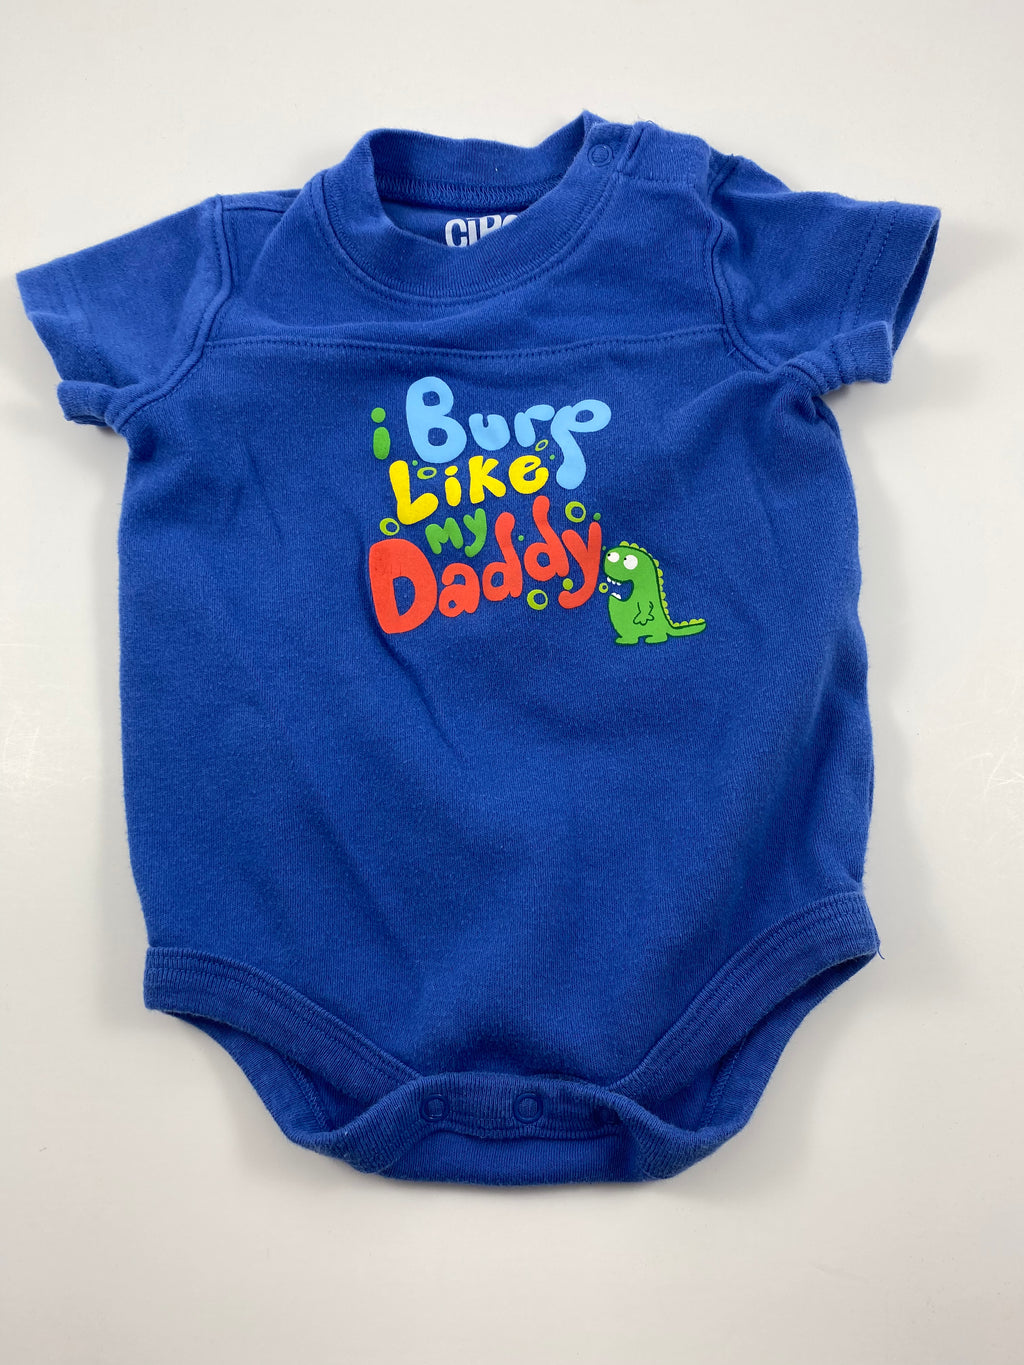 Boy's Shirt - Size 0-3mo